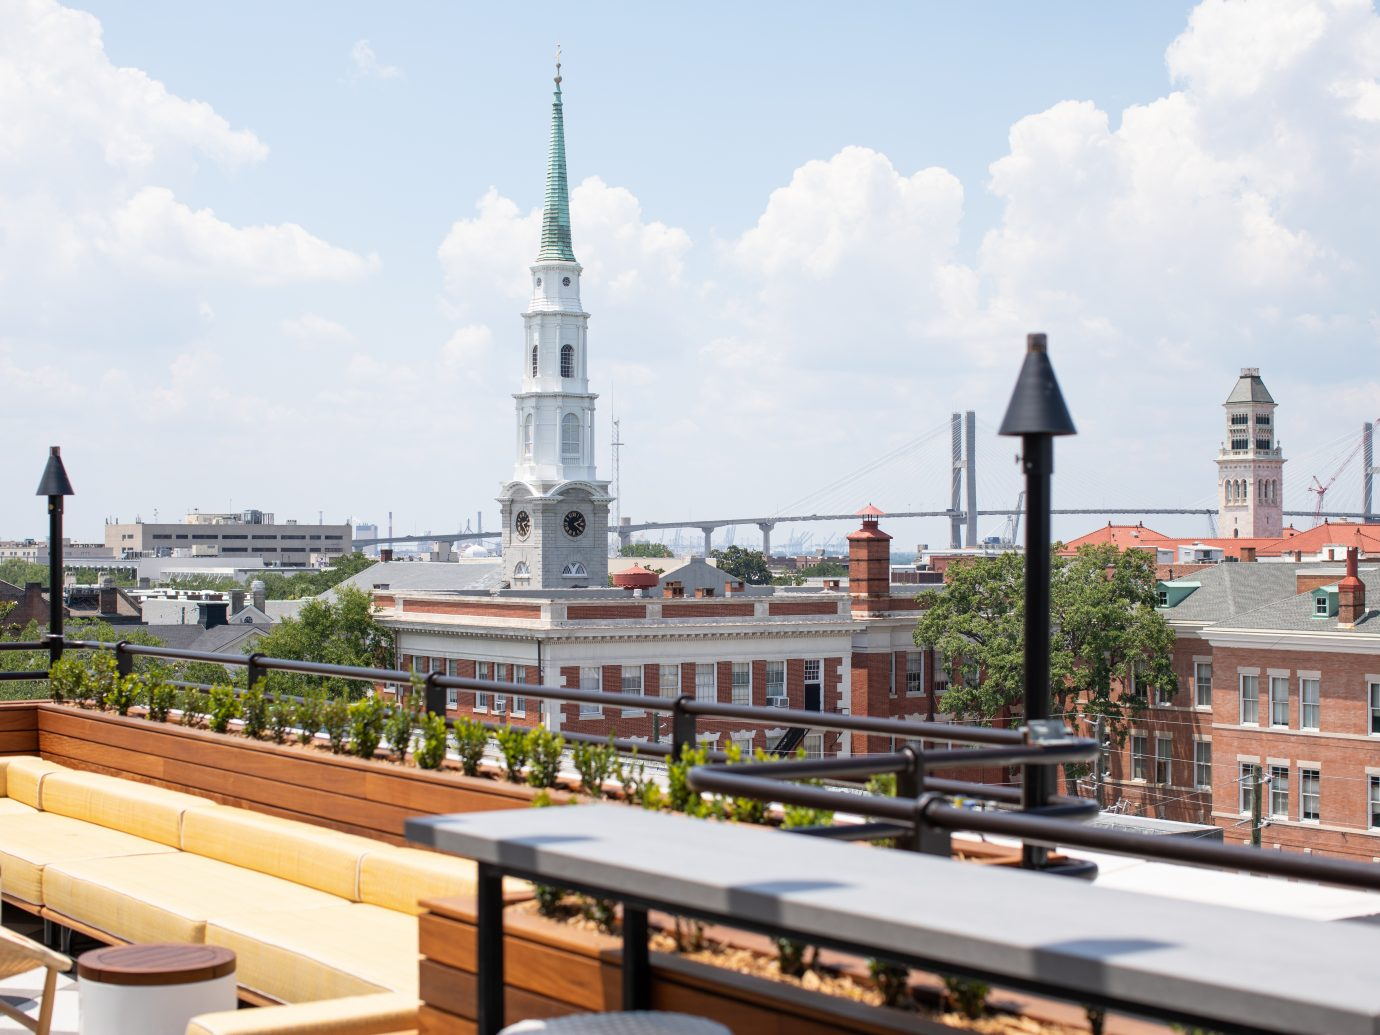 Peregrin Rooftop Pool & Bar at the Perry Lane Hotel, Savannah